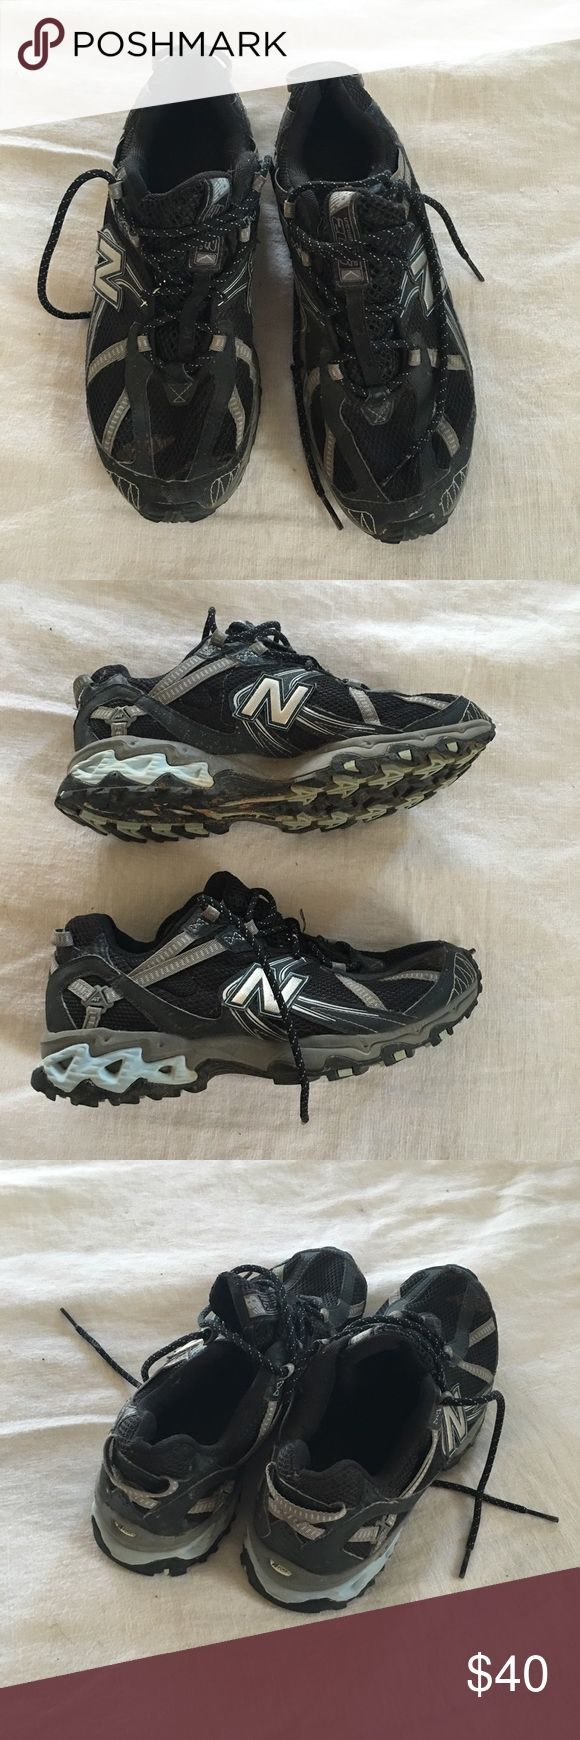 New Balance All Terrain Trail Running Shoes New Balance All Terrain shoes. Trail Running Shoes. 572 All Terrain shoe. Women's size 8.5B very little wear. New Balance Shoes